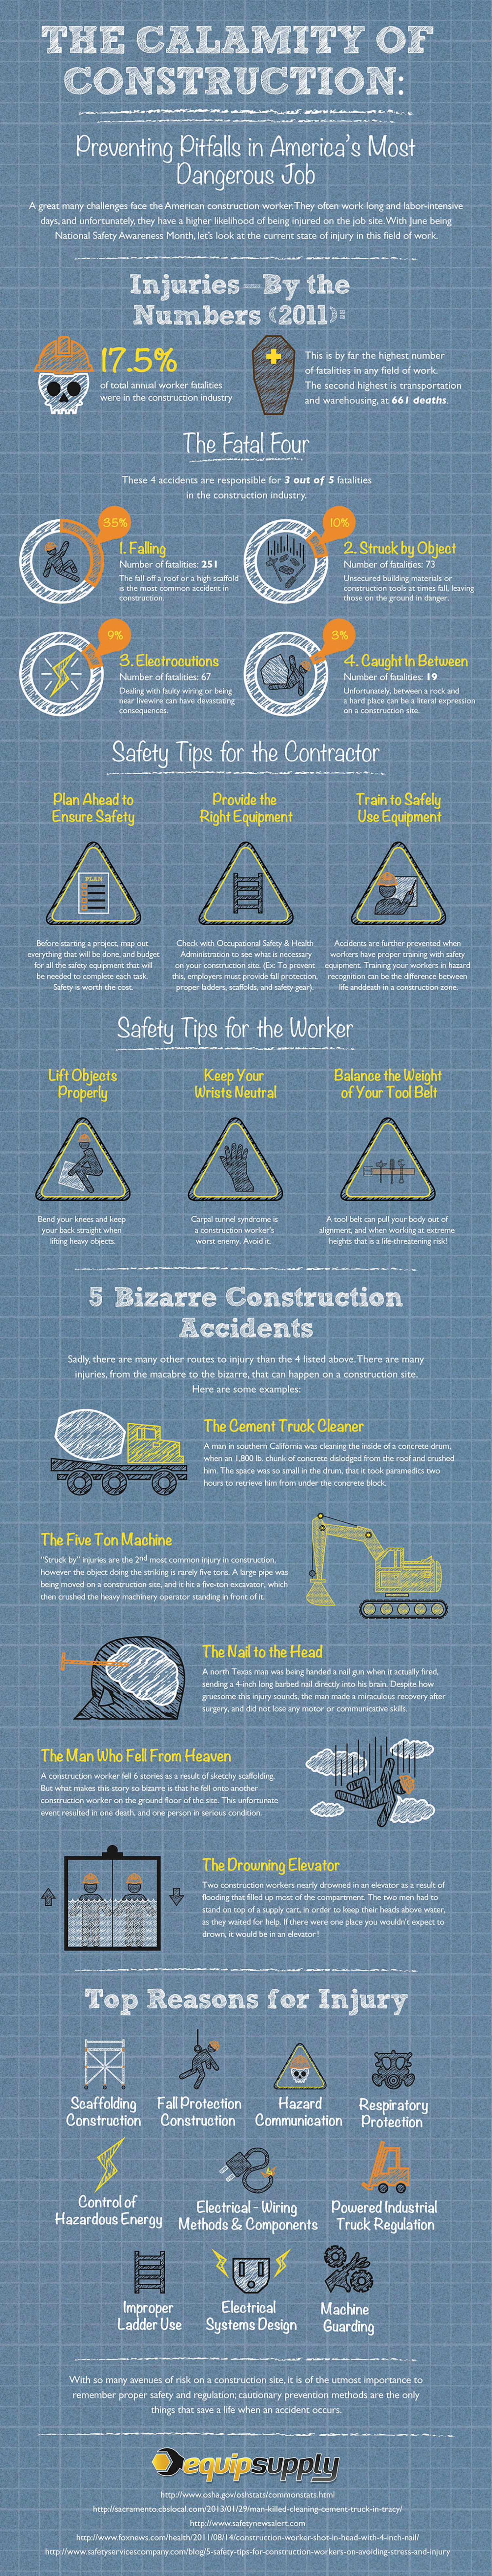 The Calamities of Construction Infographic